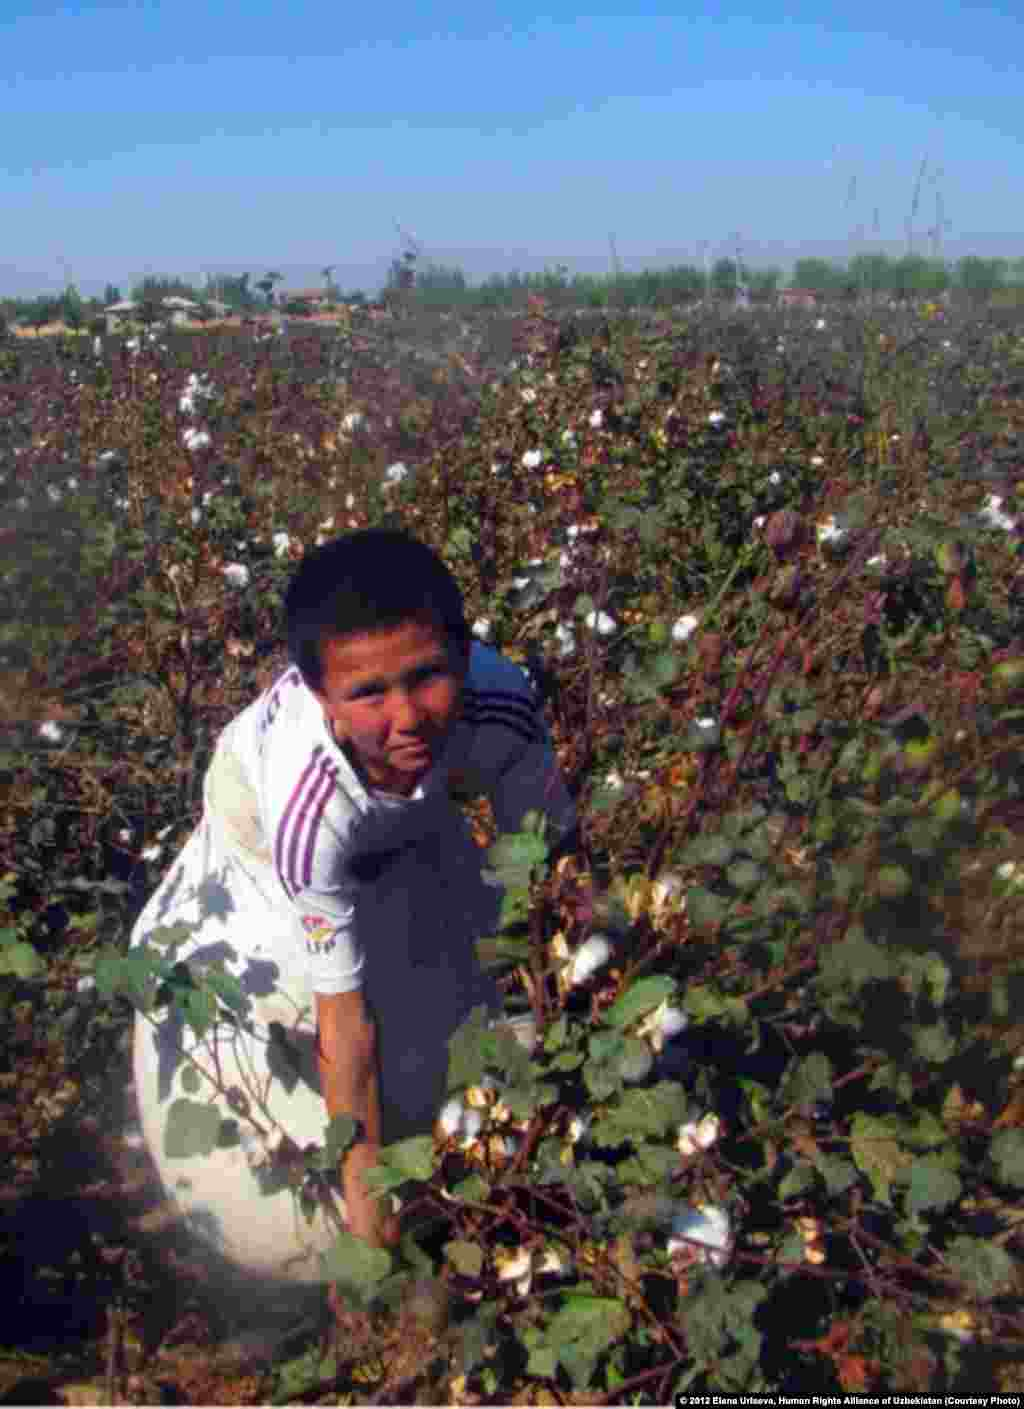 Boy picking cotton, October 2012